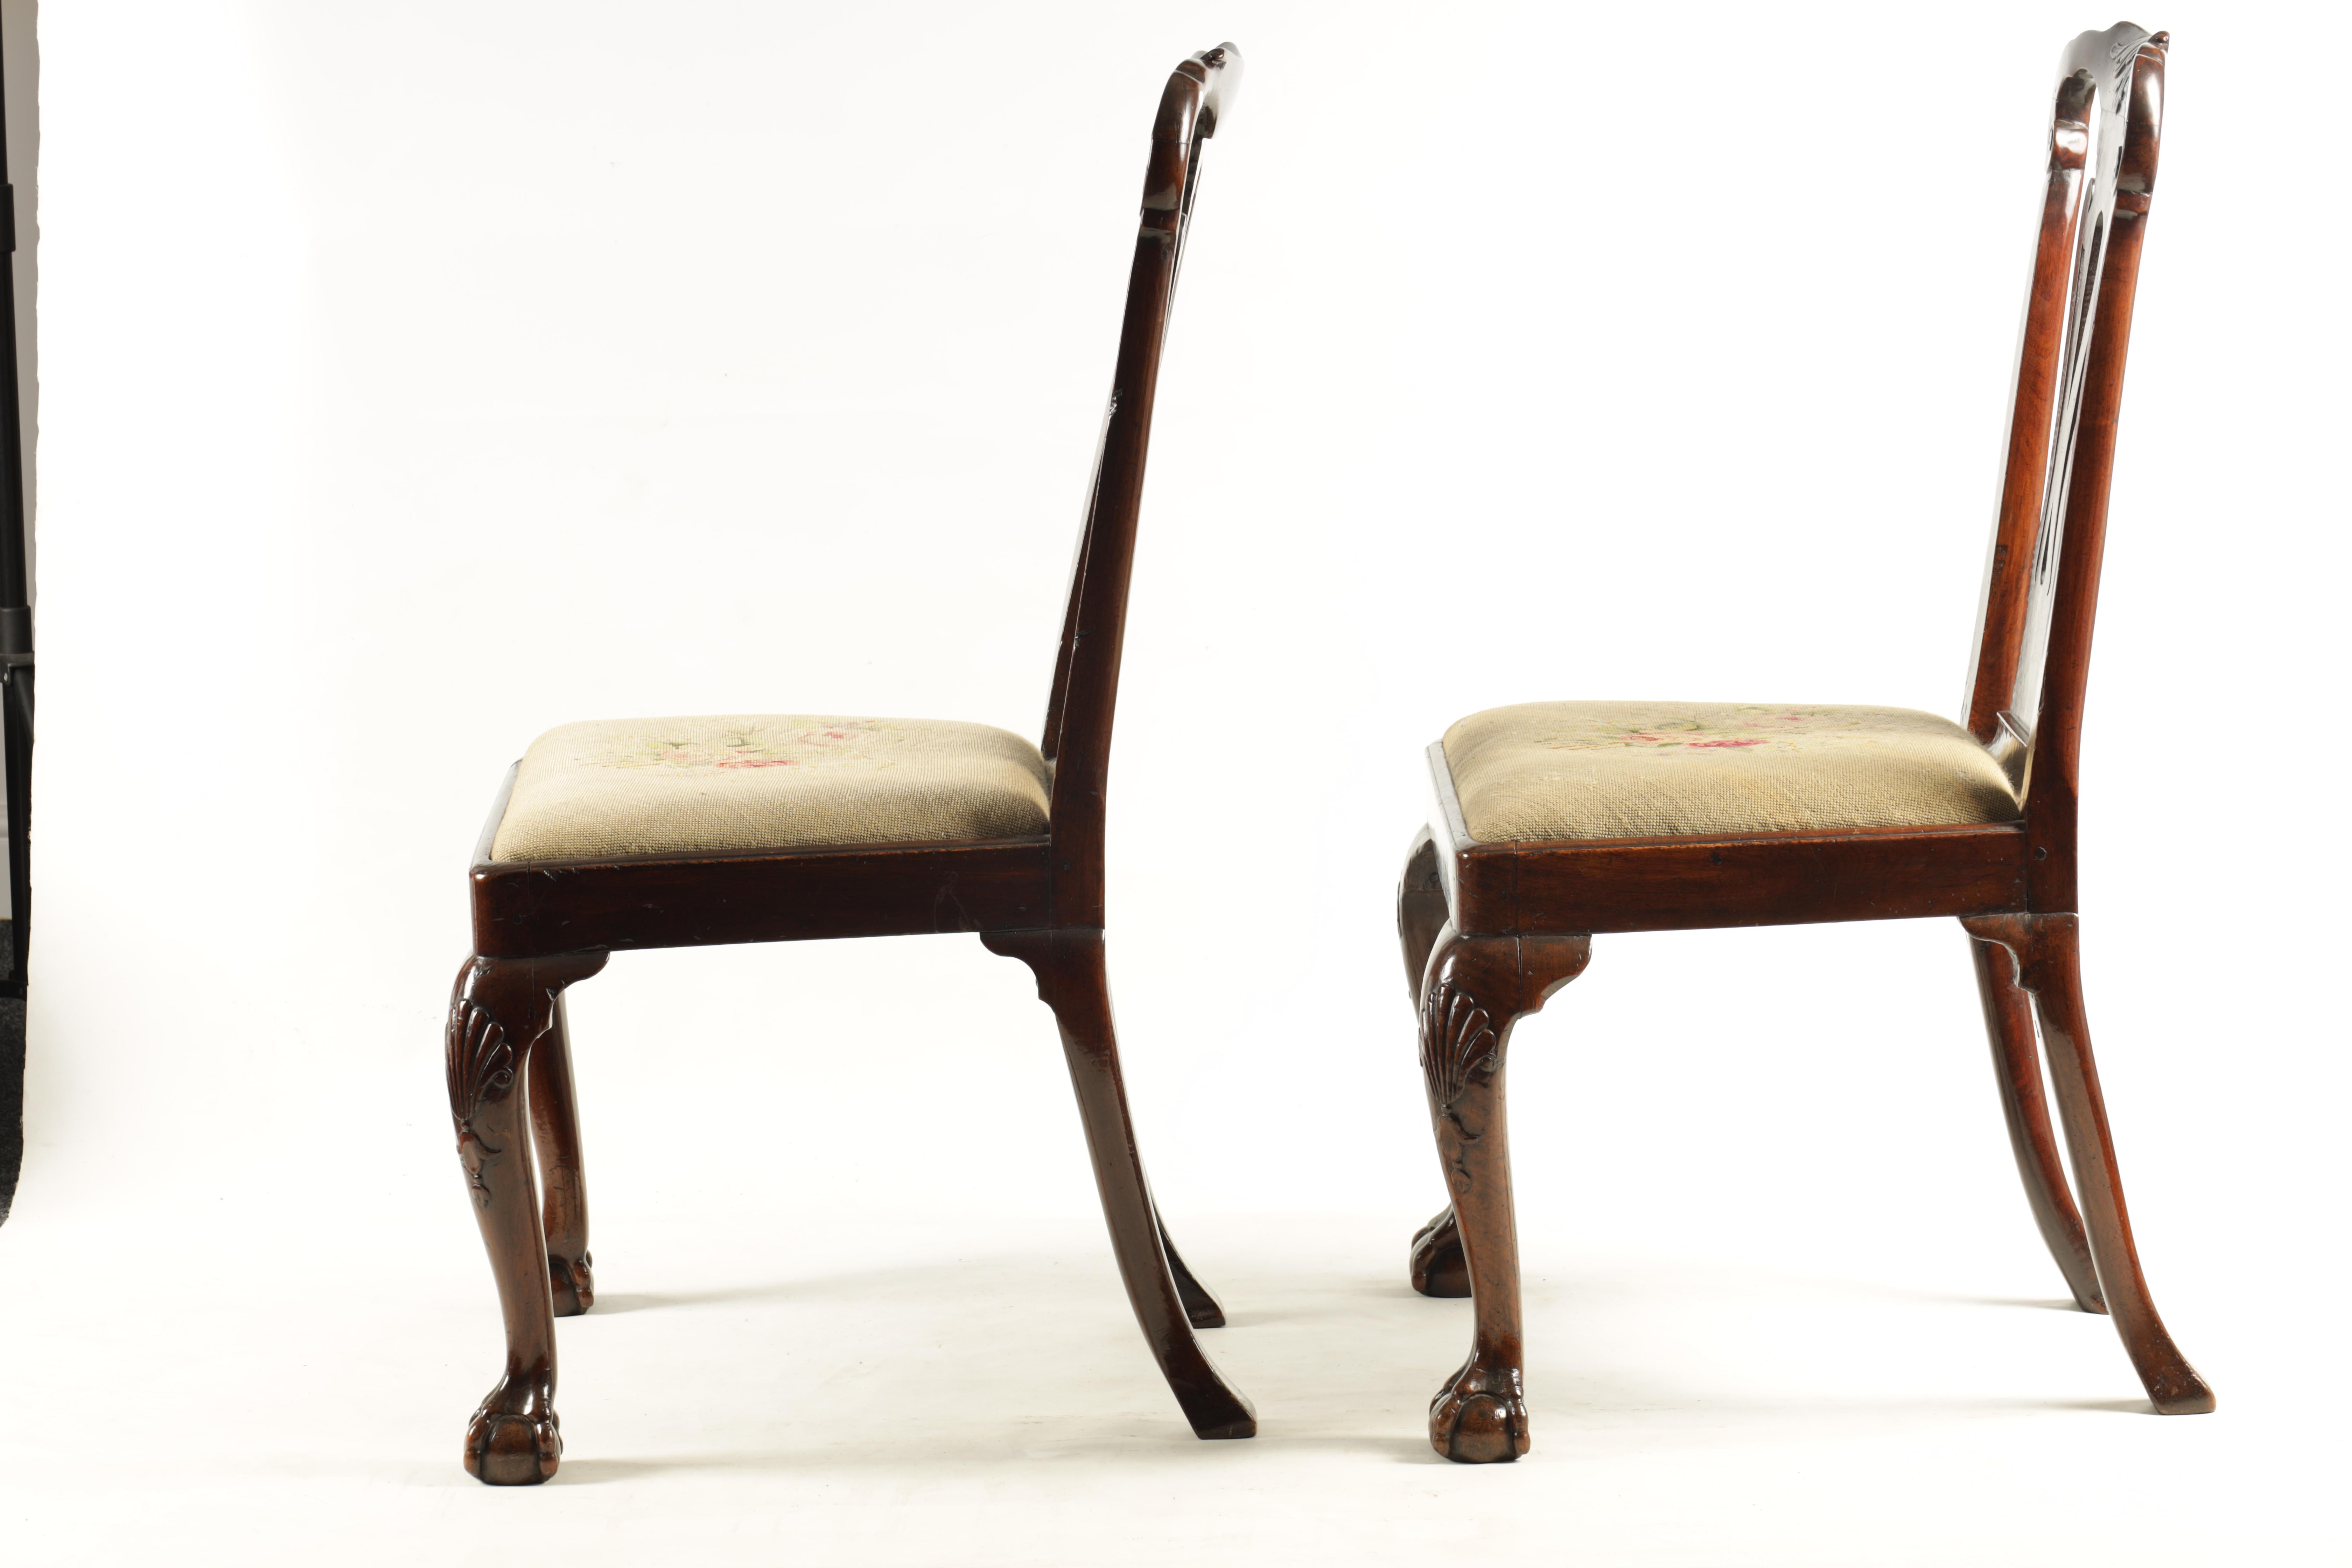 A PAIR OF GEORGE I WALNUT SIDE CHAIRS with leaf carved and scrolled top rails above vase-shaped - Image 8 of 12